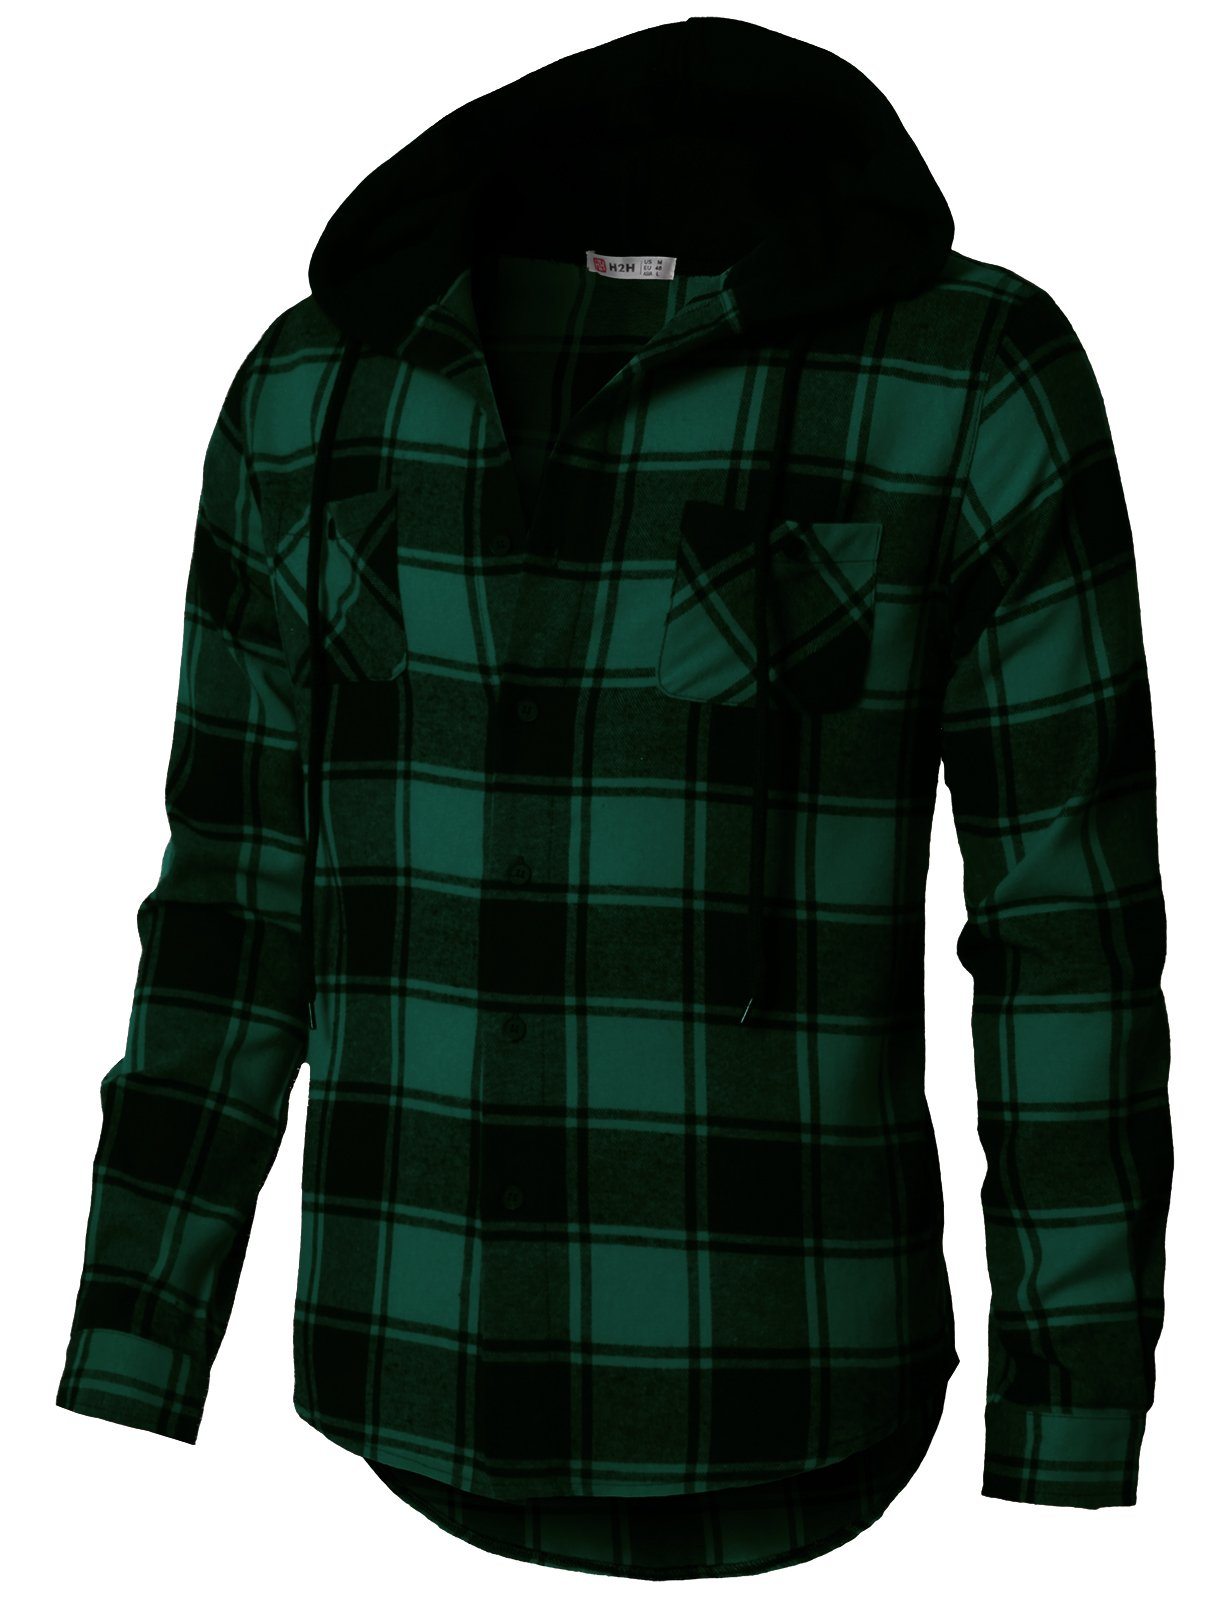 H2H Mens Casual Flannel Shirts Hoodie Jacket Green US XL/Asia 2XL (CMOJA0105)